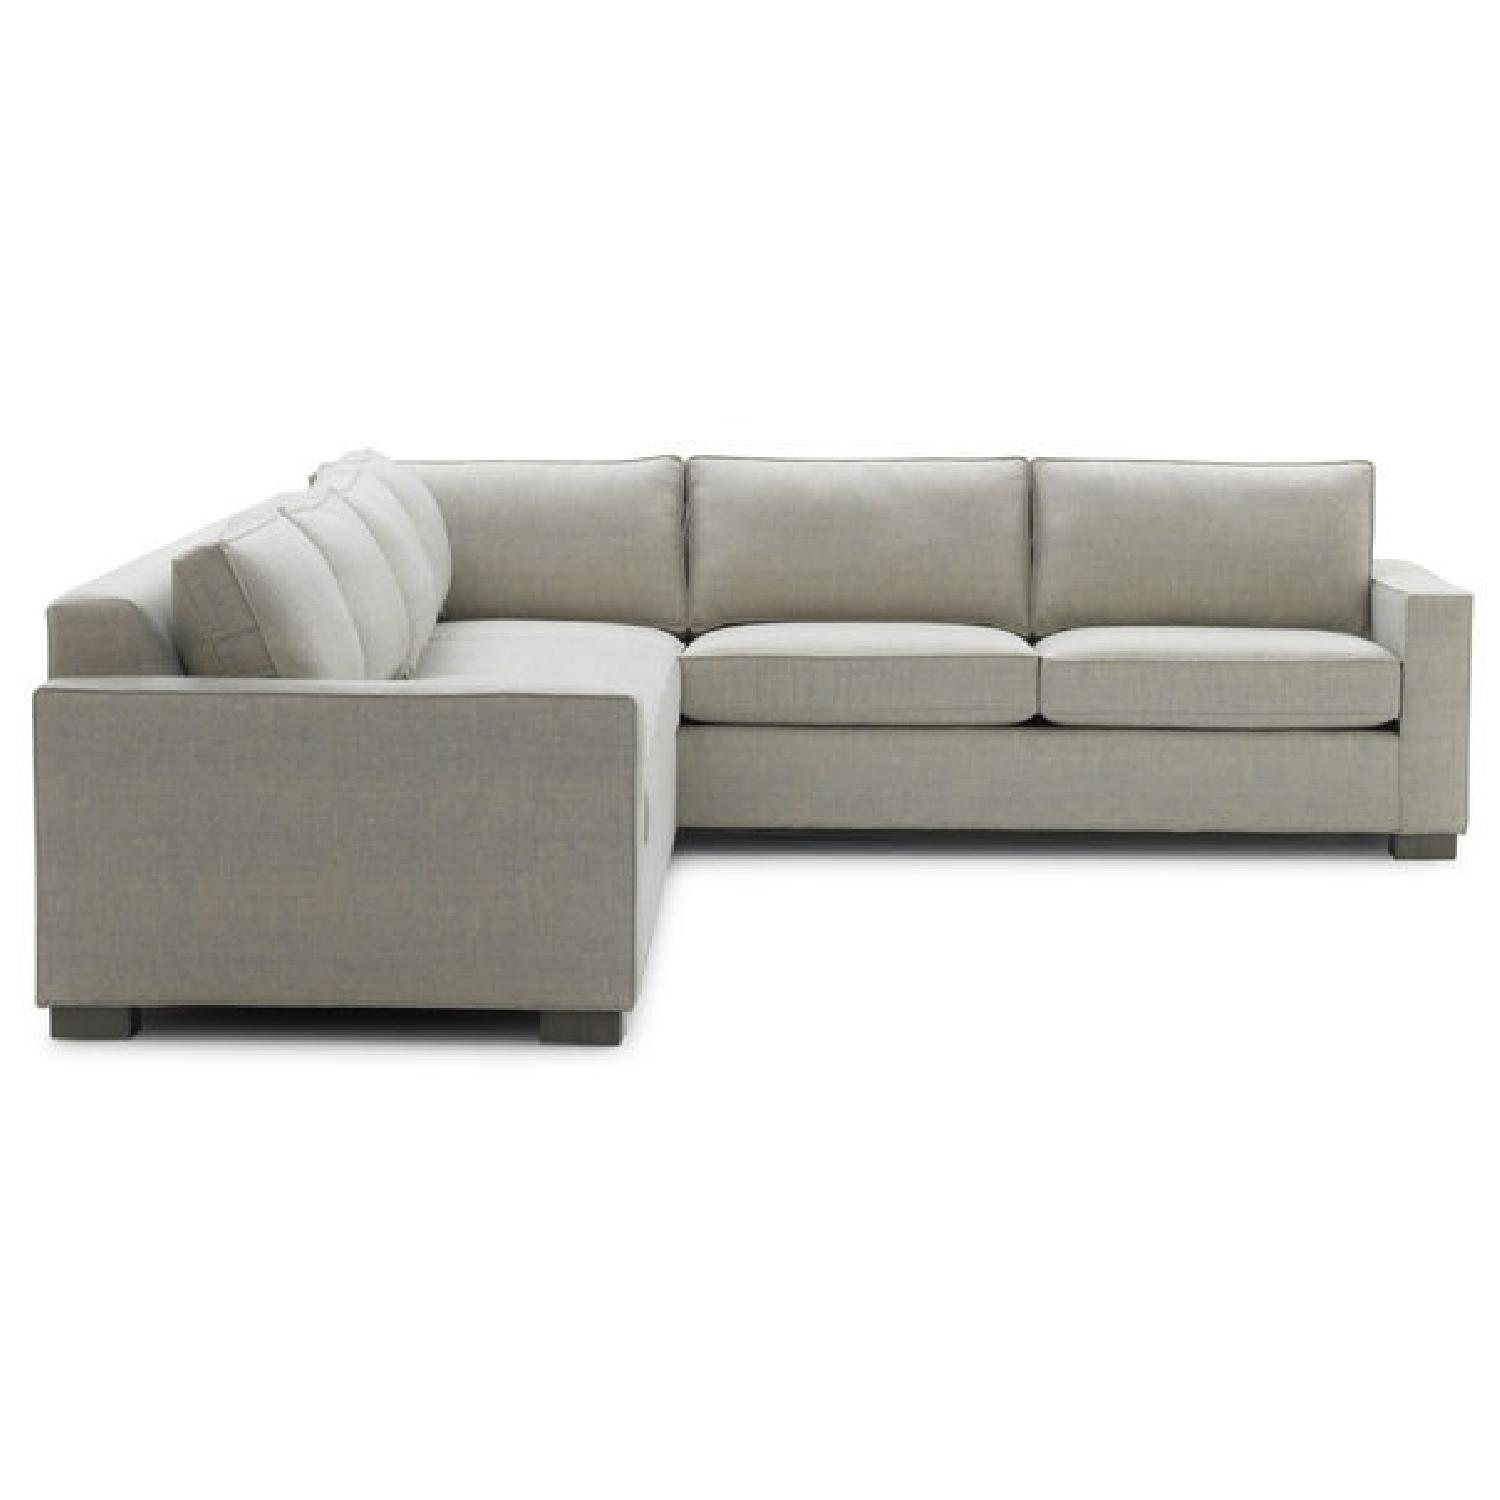 Mitchell Gold + Bob Williams Carson Sectional Sofa In Grey ...